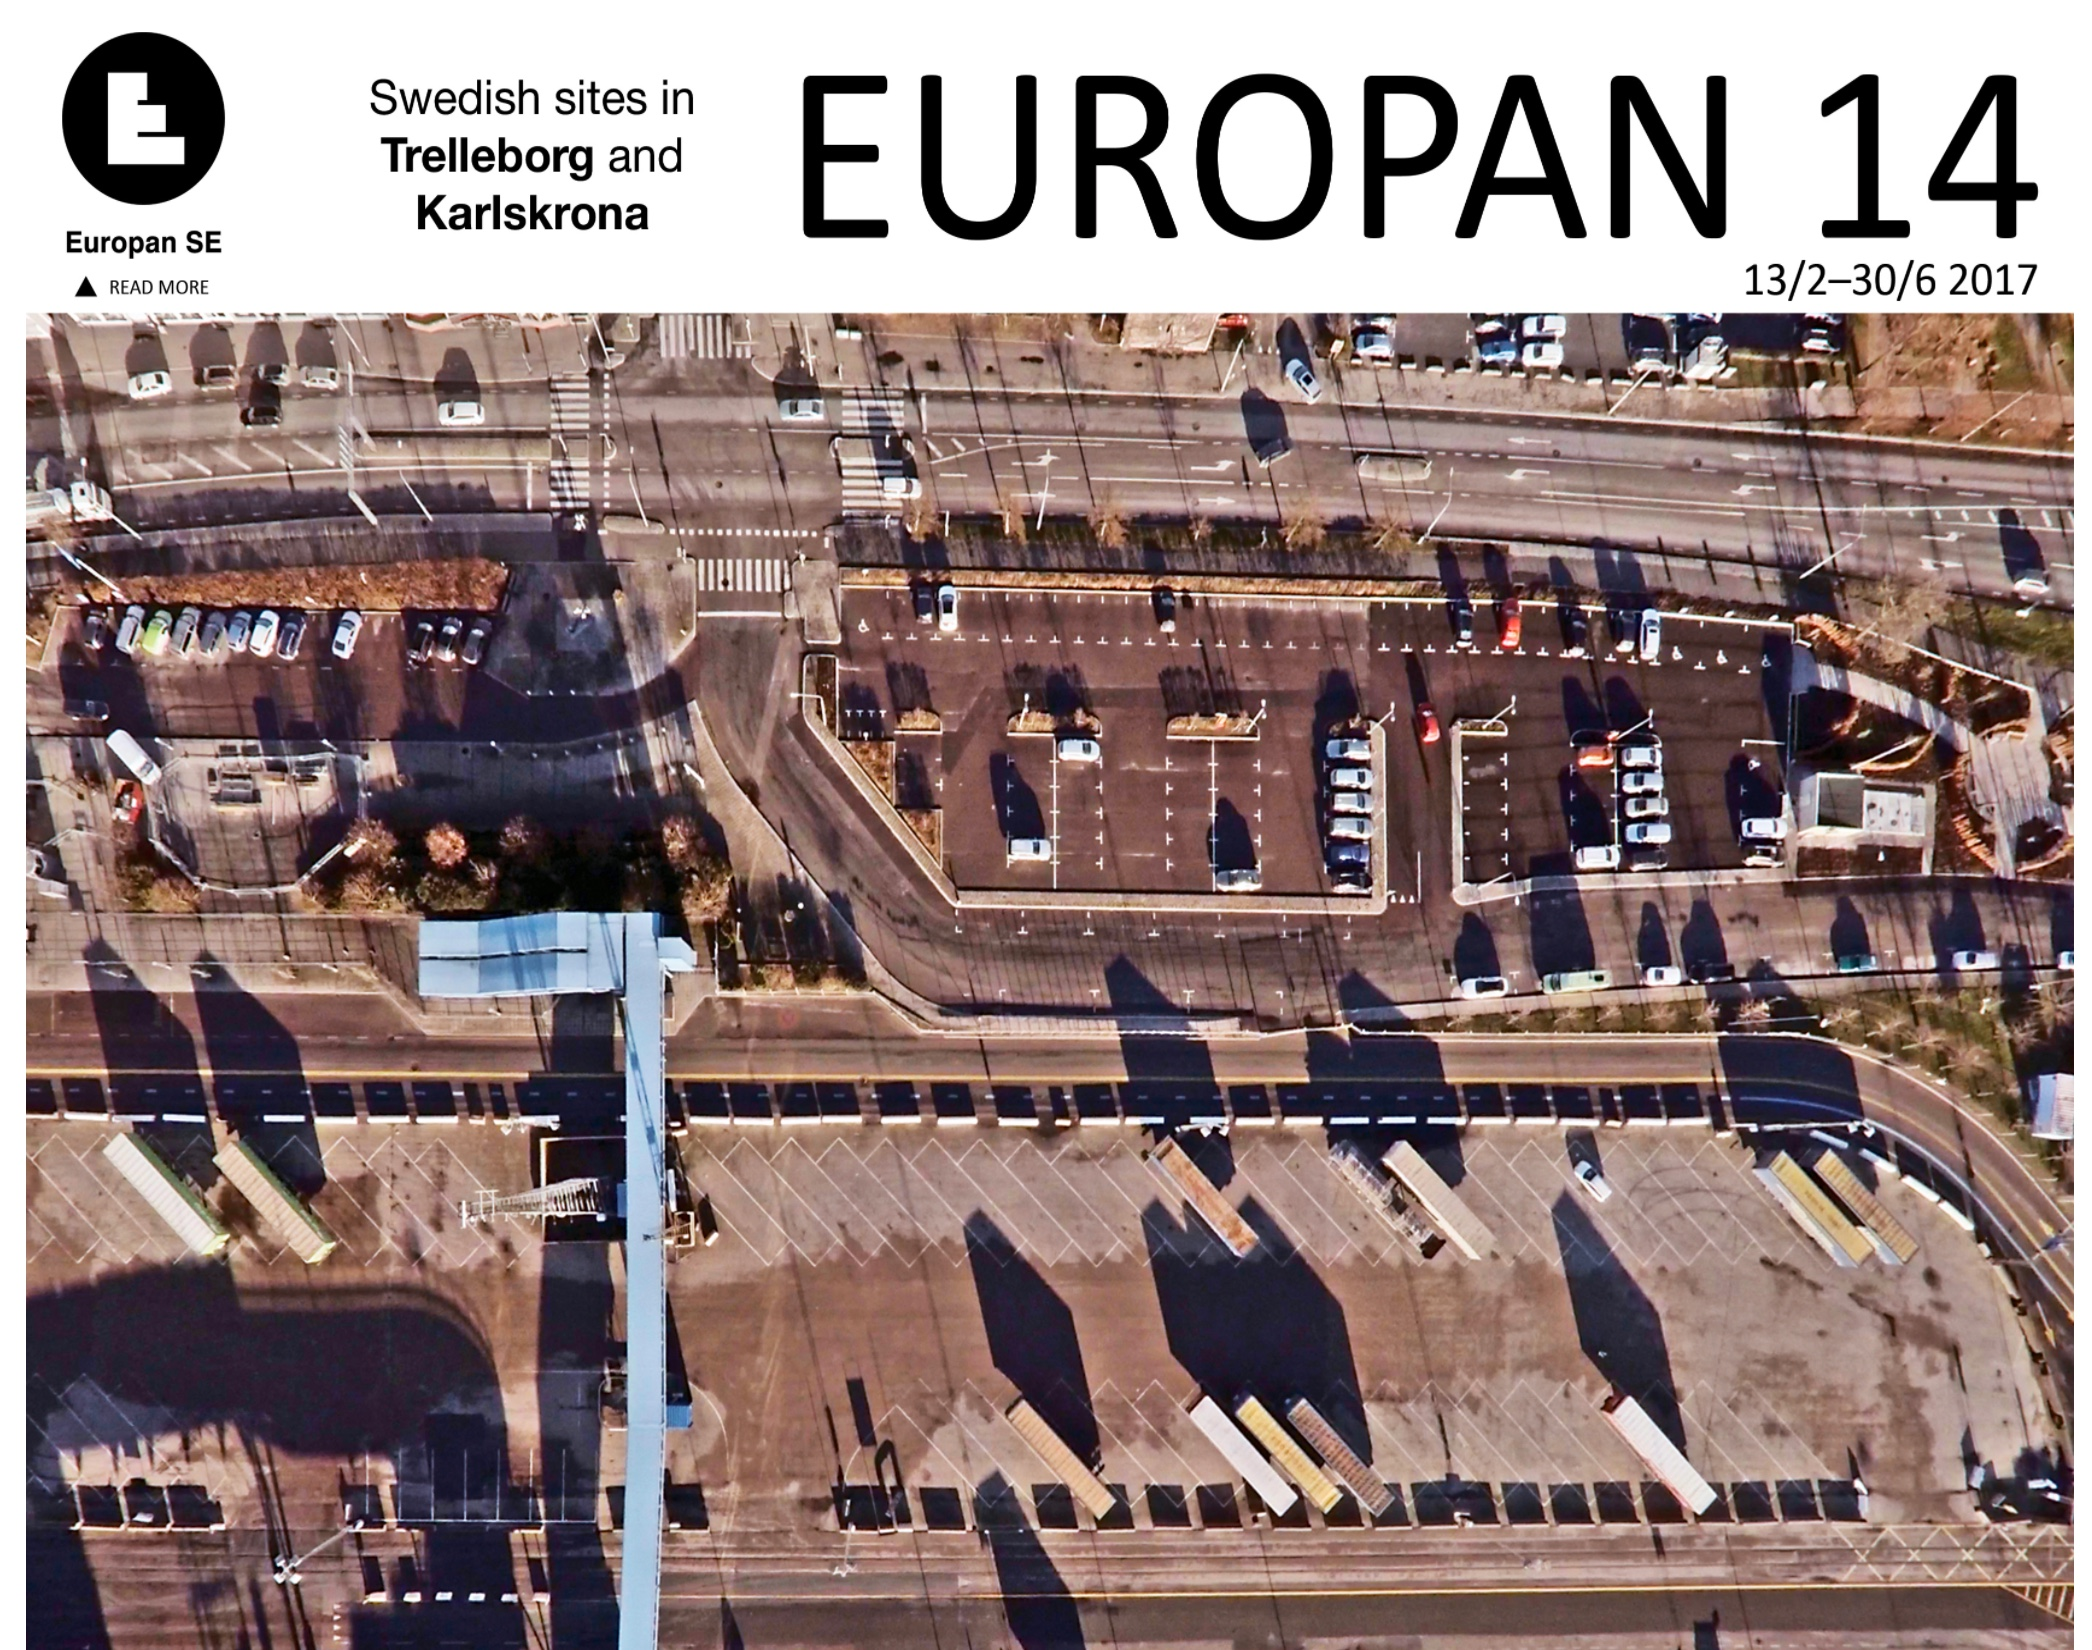 Iñaqui Carnicero juror in Europan 14 Competition in Sweden